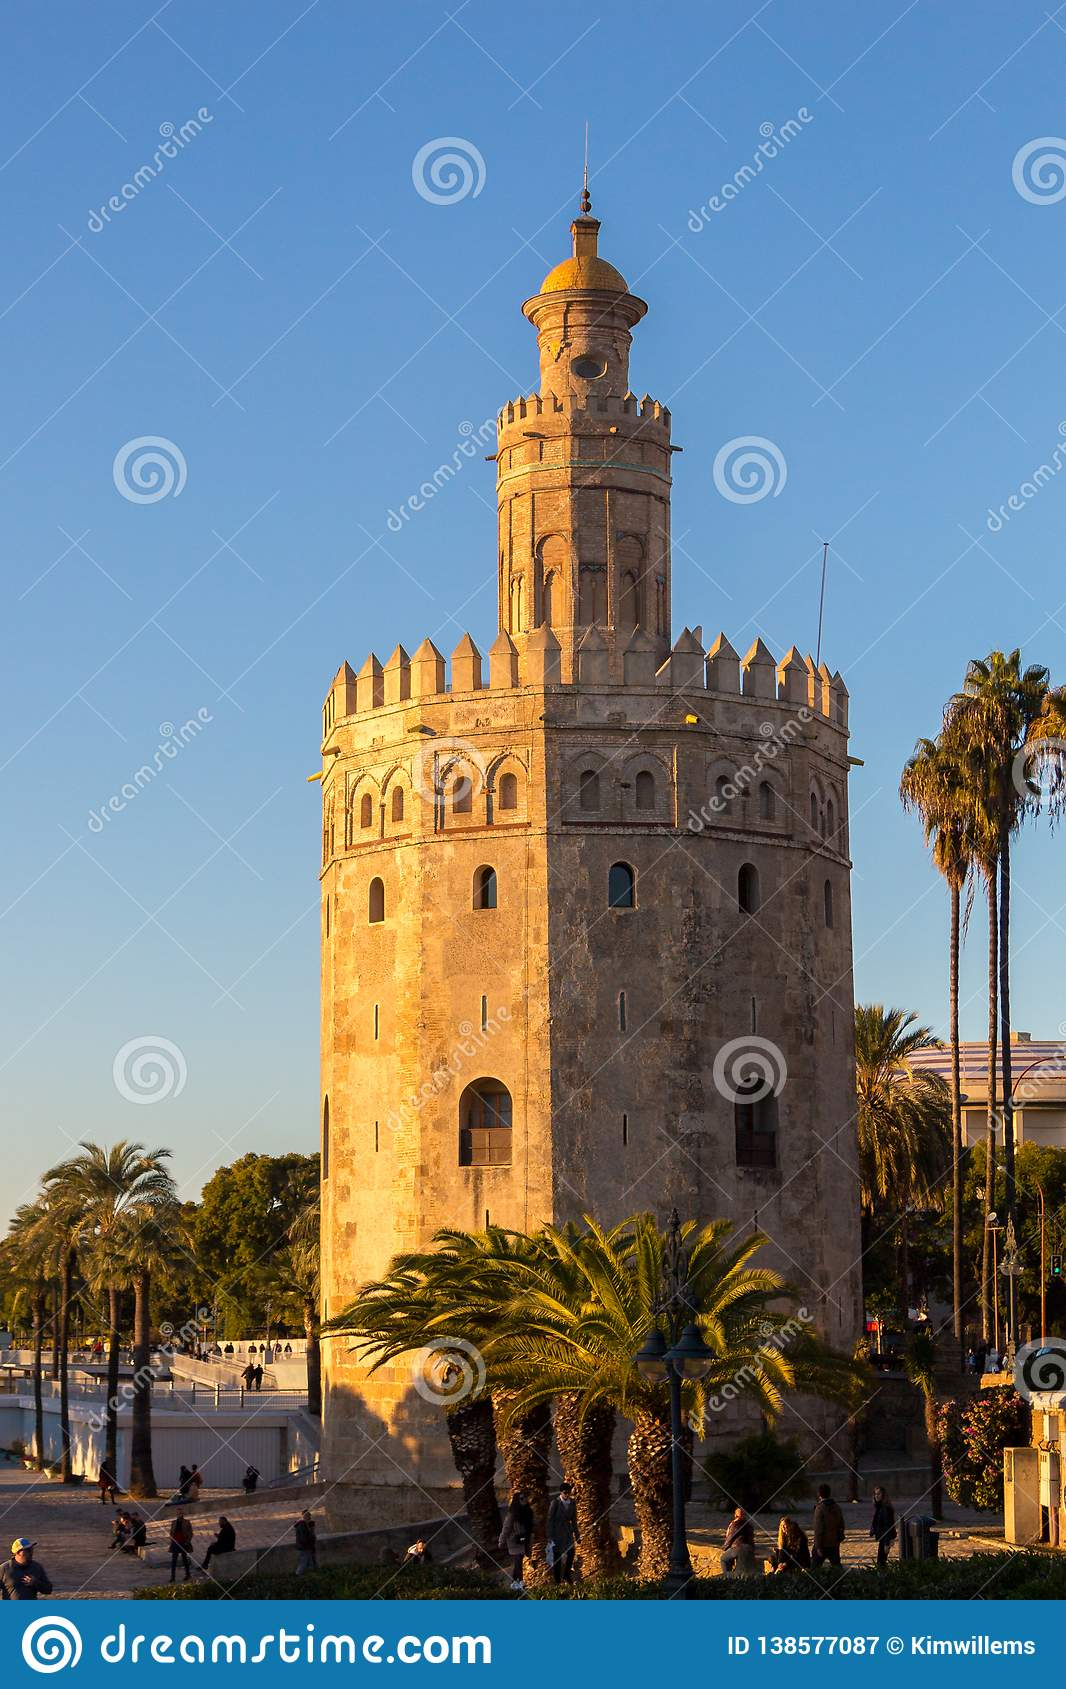 Golden hour with the golden tower in Seville